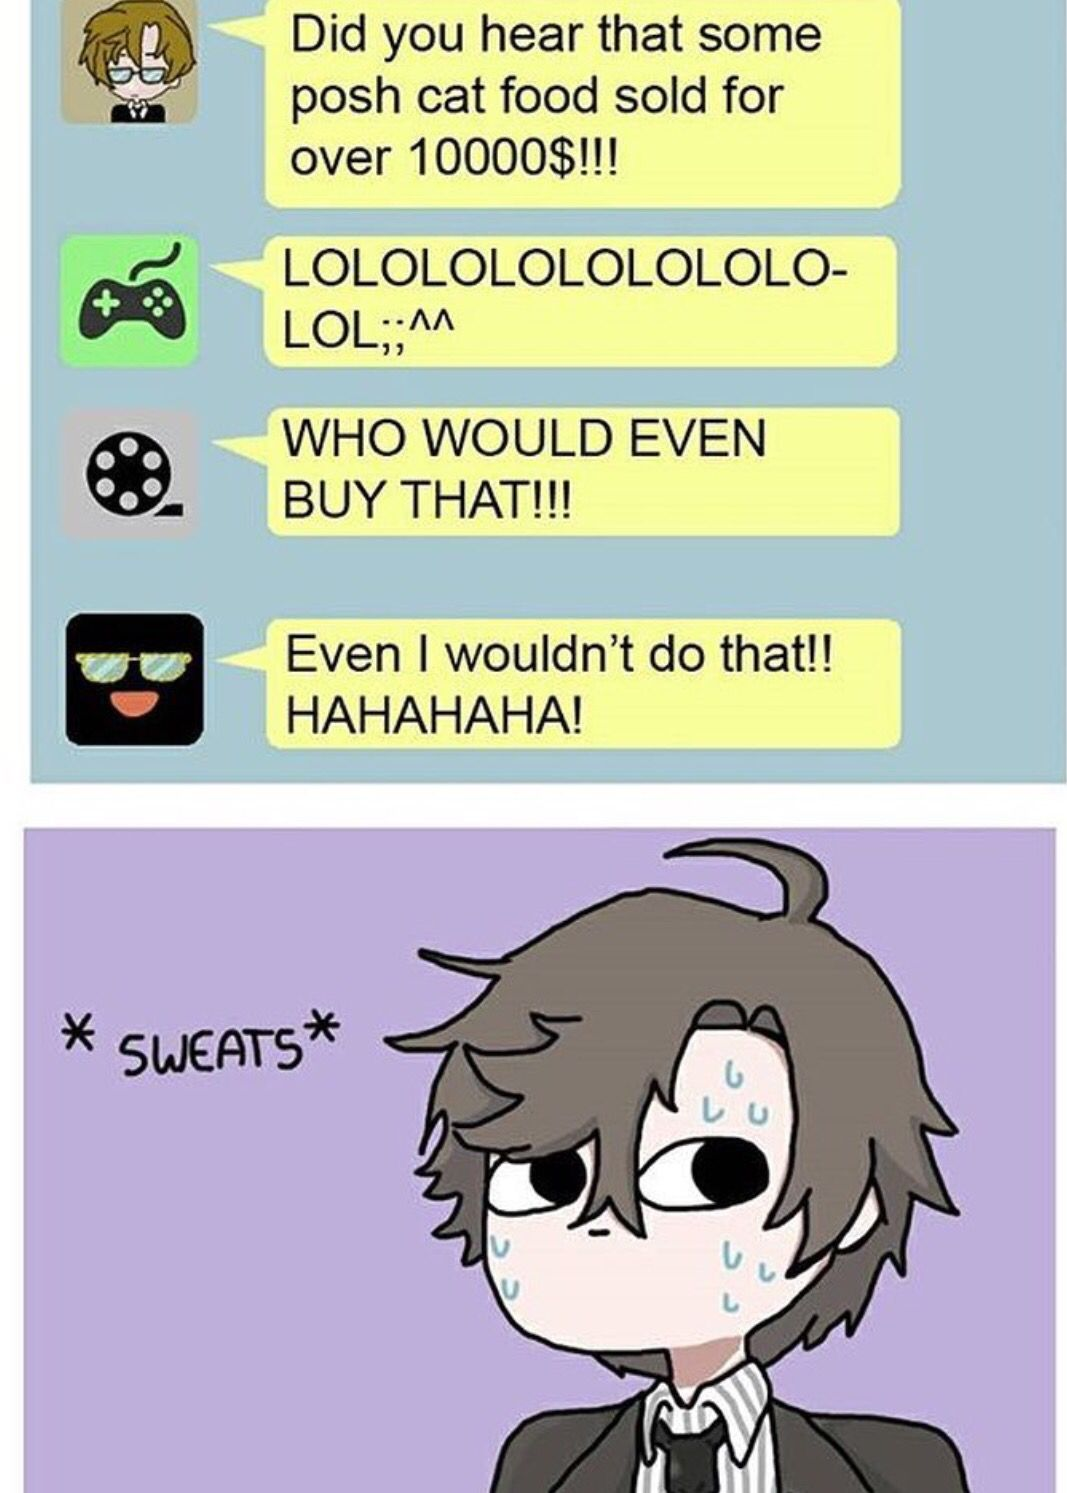 Jumin would ;3>>why who would buy that much forjumin?why